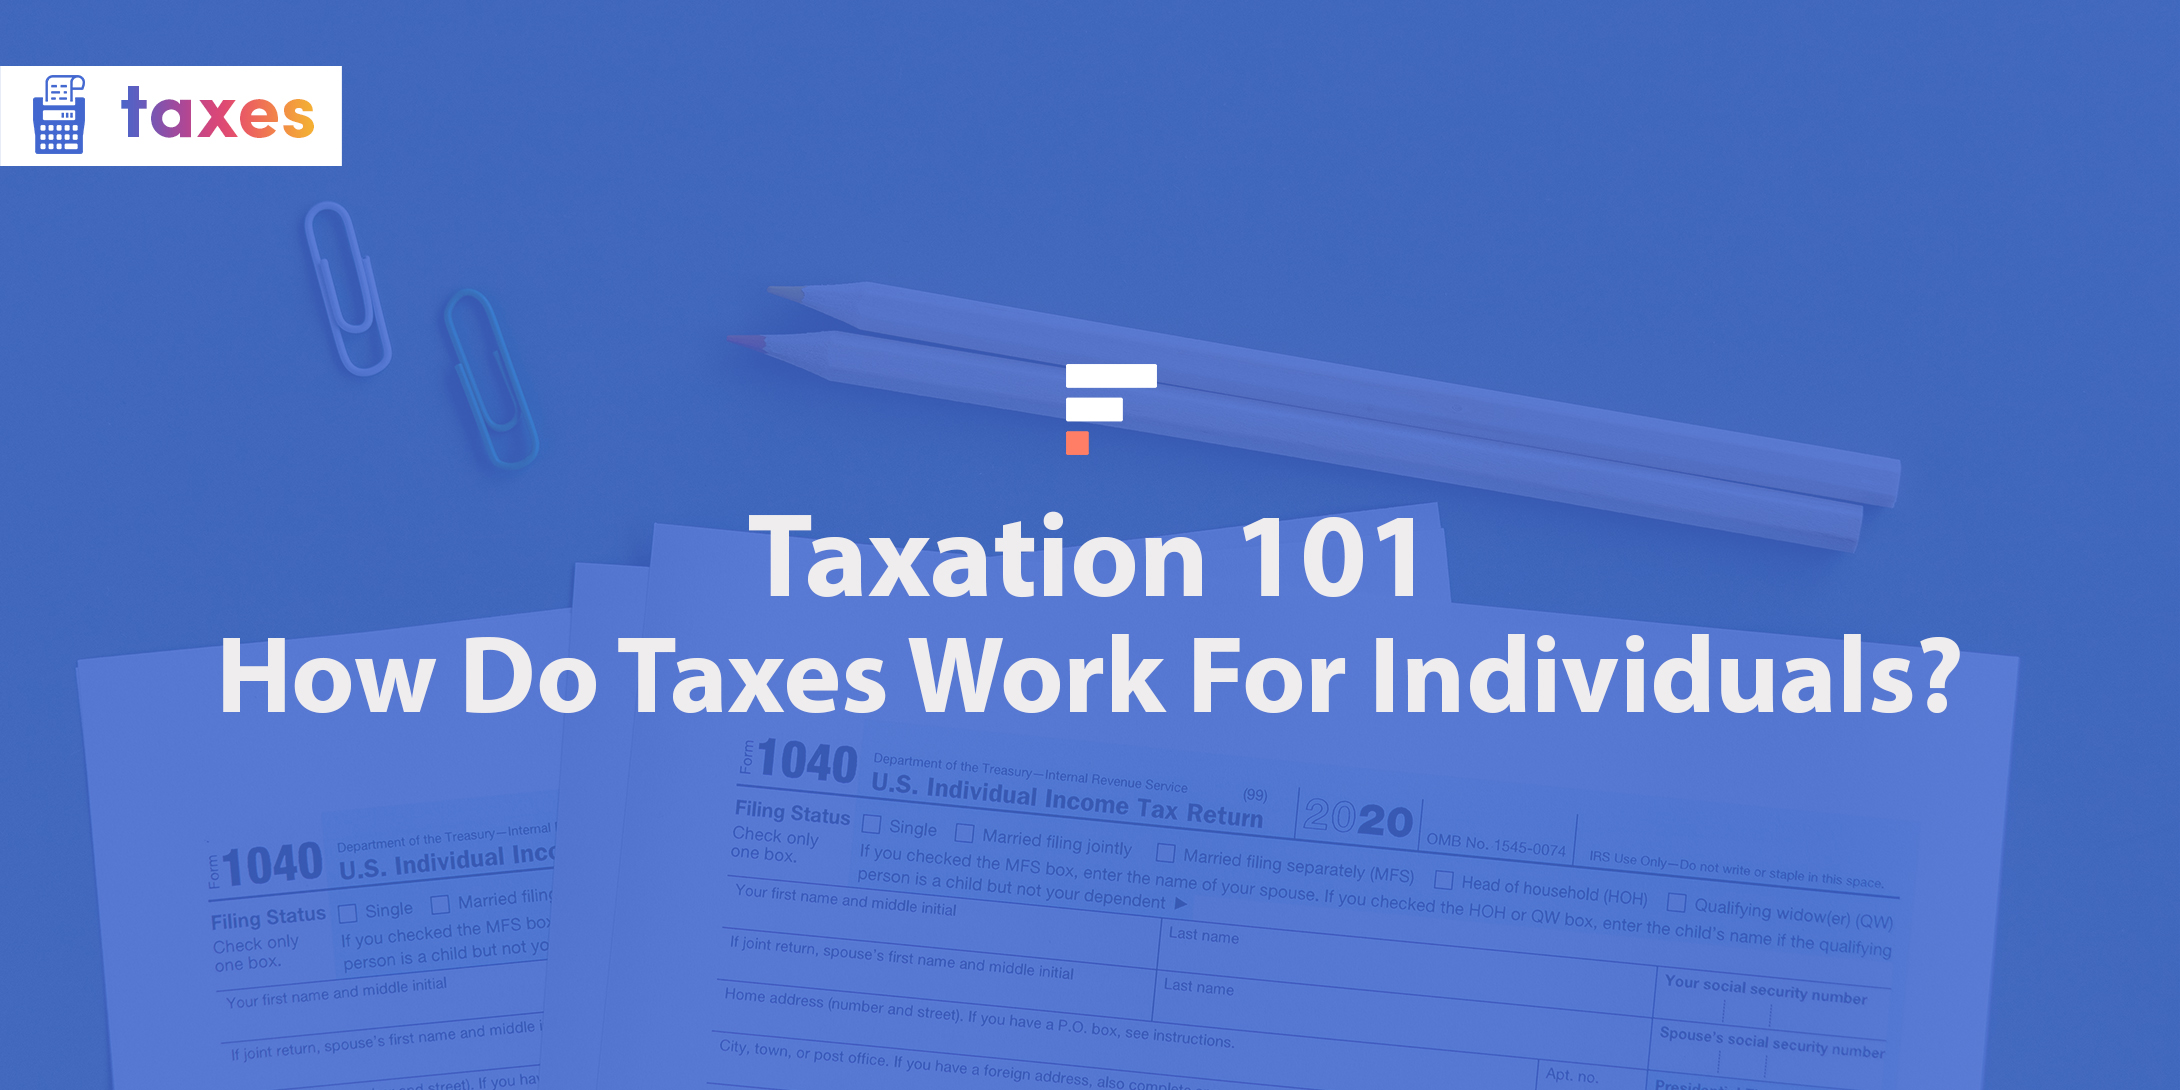 Taxation 101: How Do Taxes Work For Individuals?